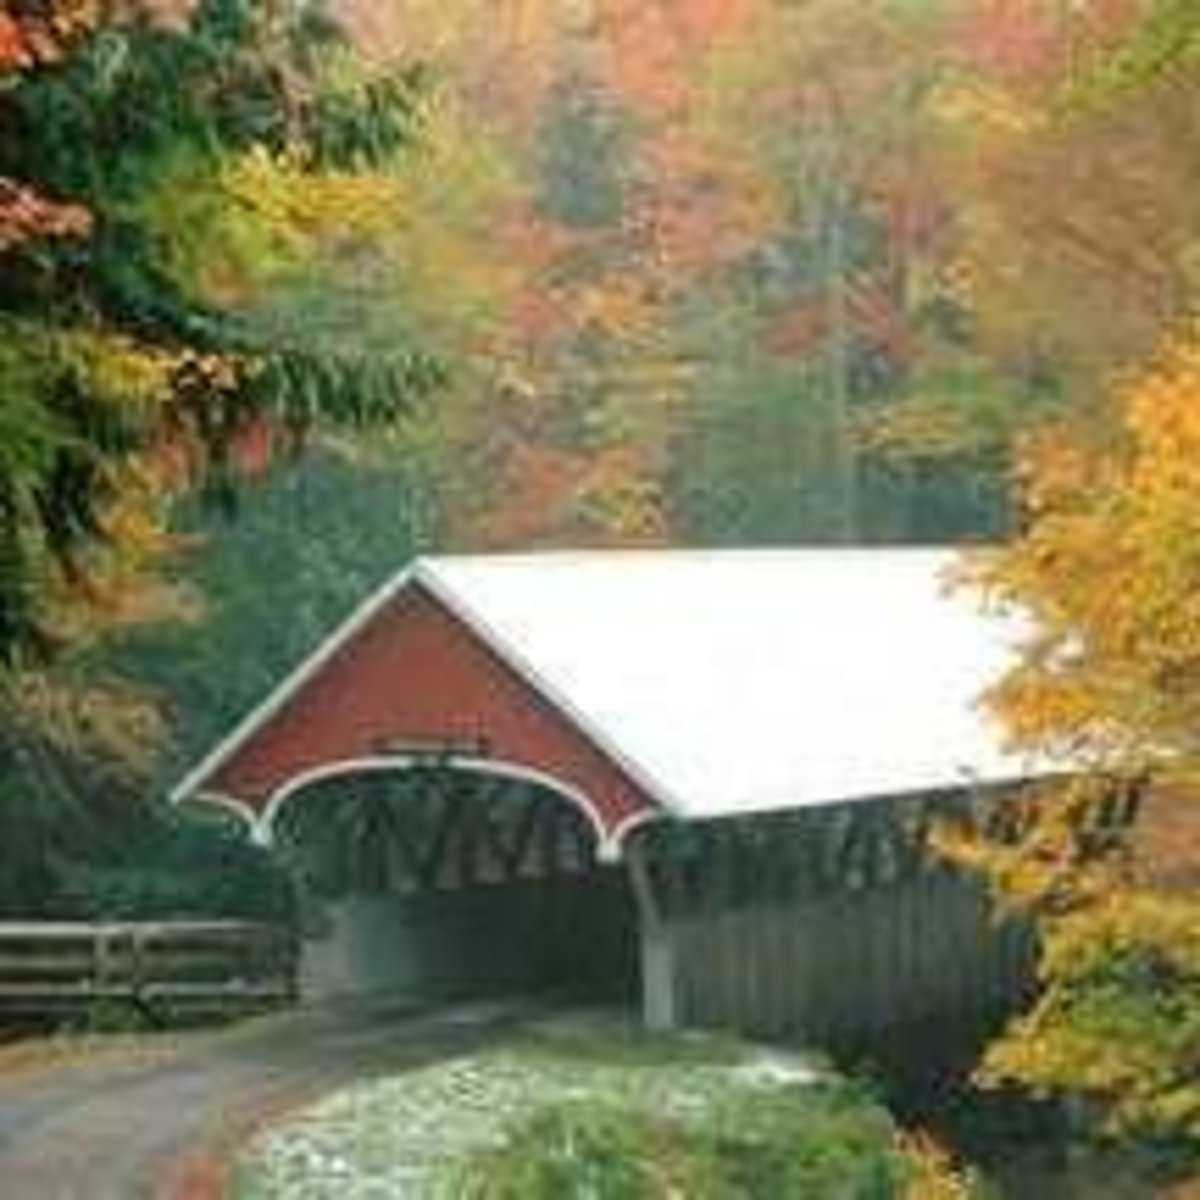 New Hampshire has almost 50 covered bridges that are on the National Register of Historic Places.